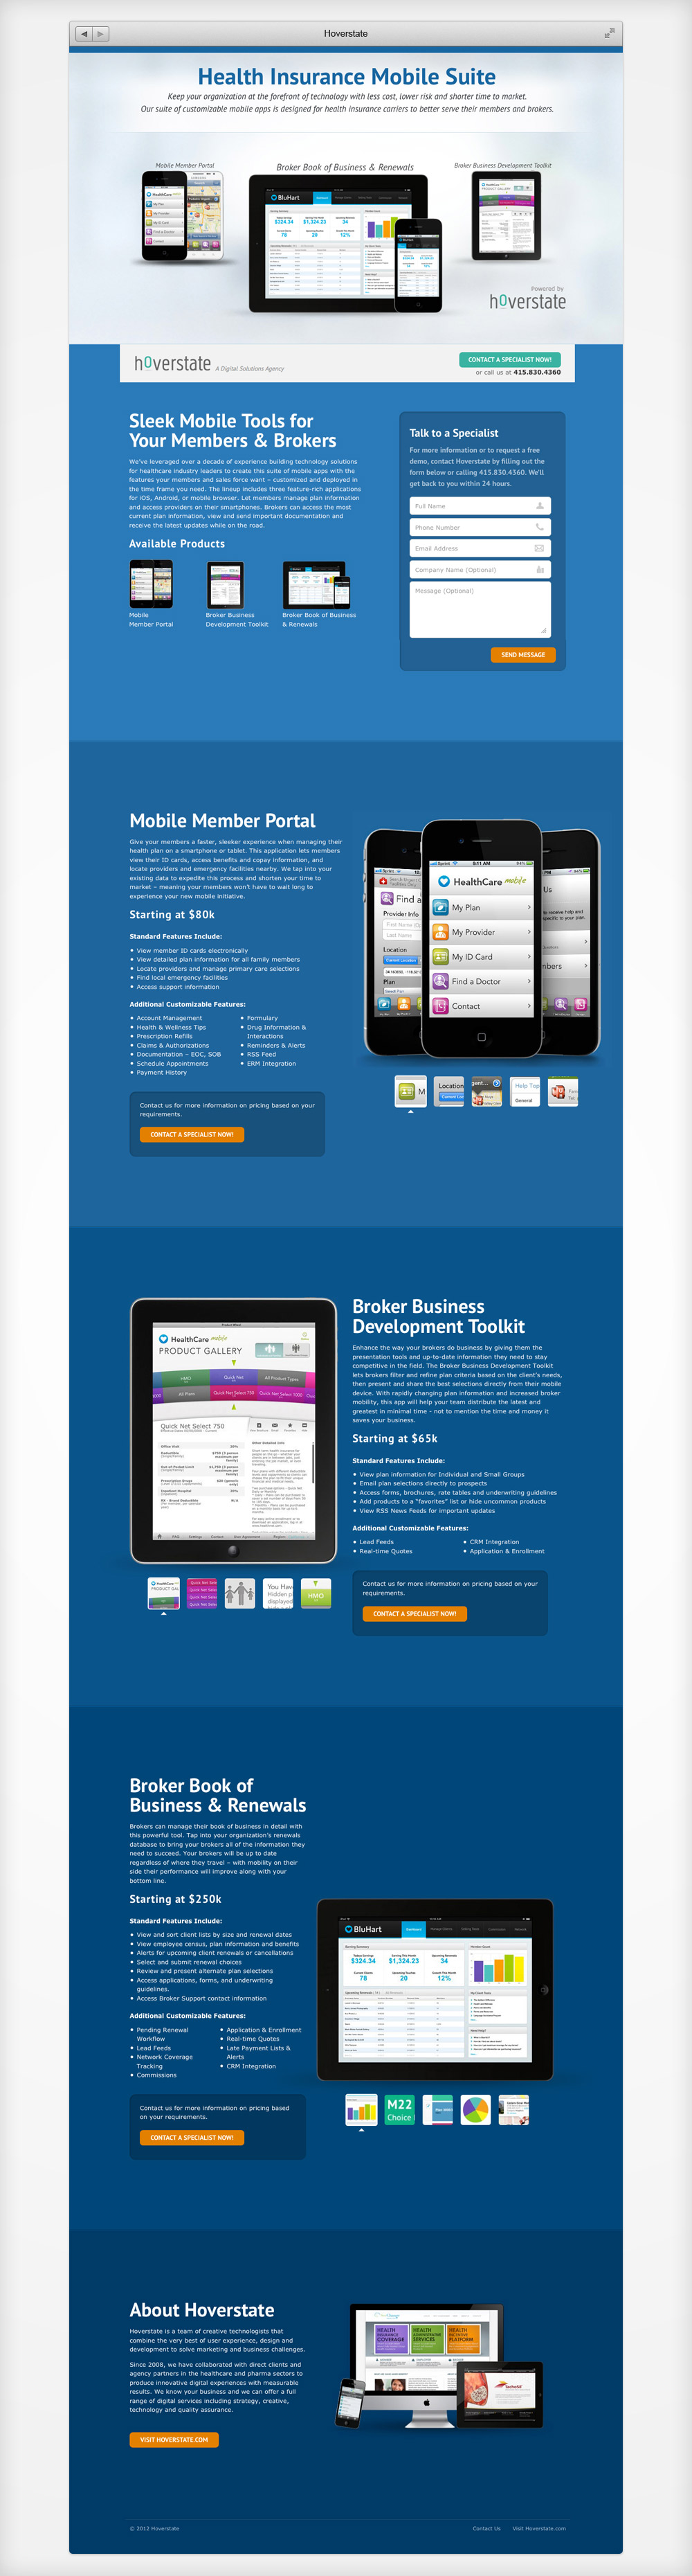 browser-healthcare-landing-page